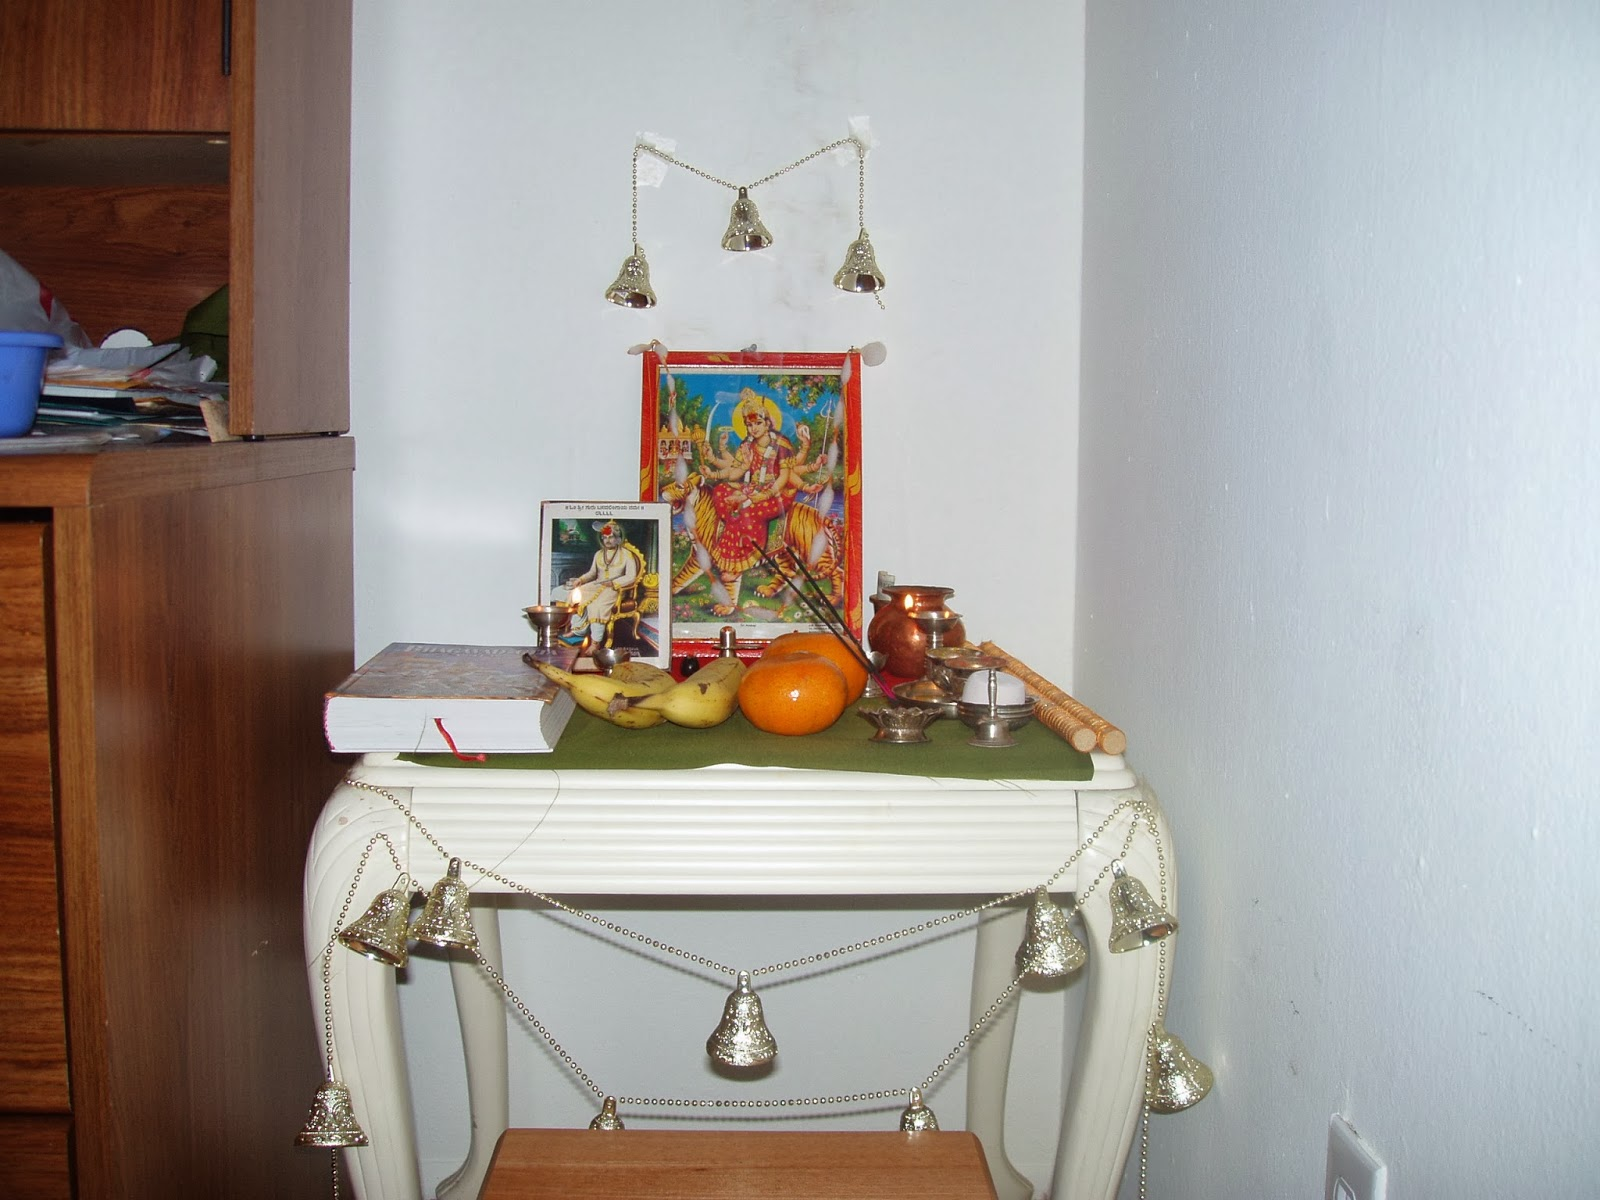 weekend tweaks my pooja space in our home so set up my pooja space on a table on a book shelf and also had it on a wall shelf these are the only two pictures i found from the album